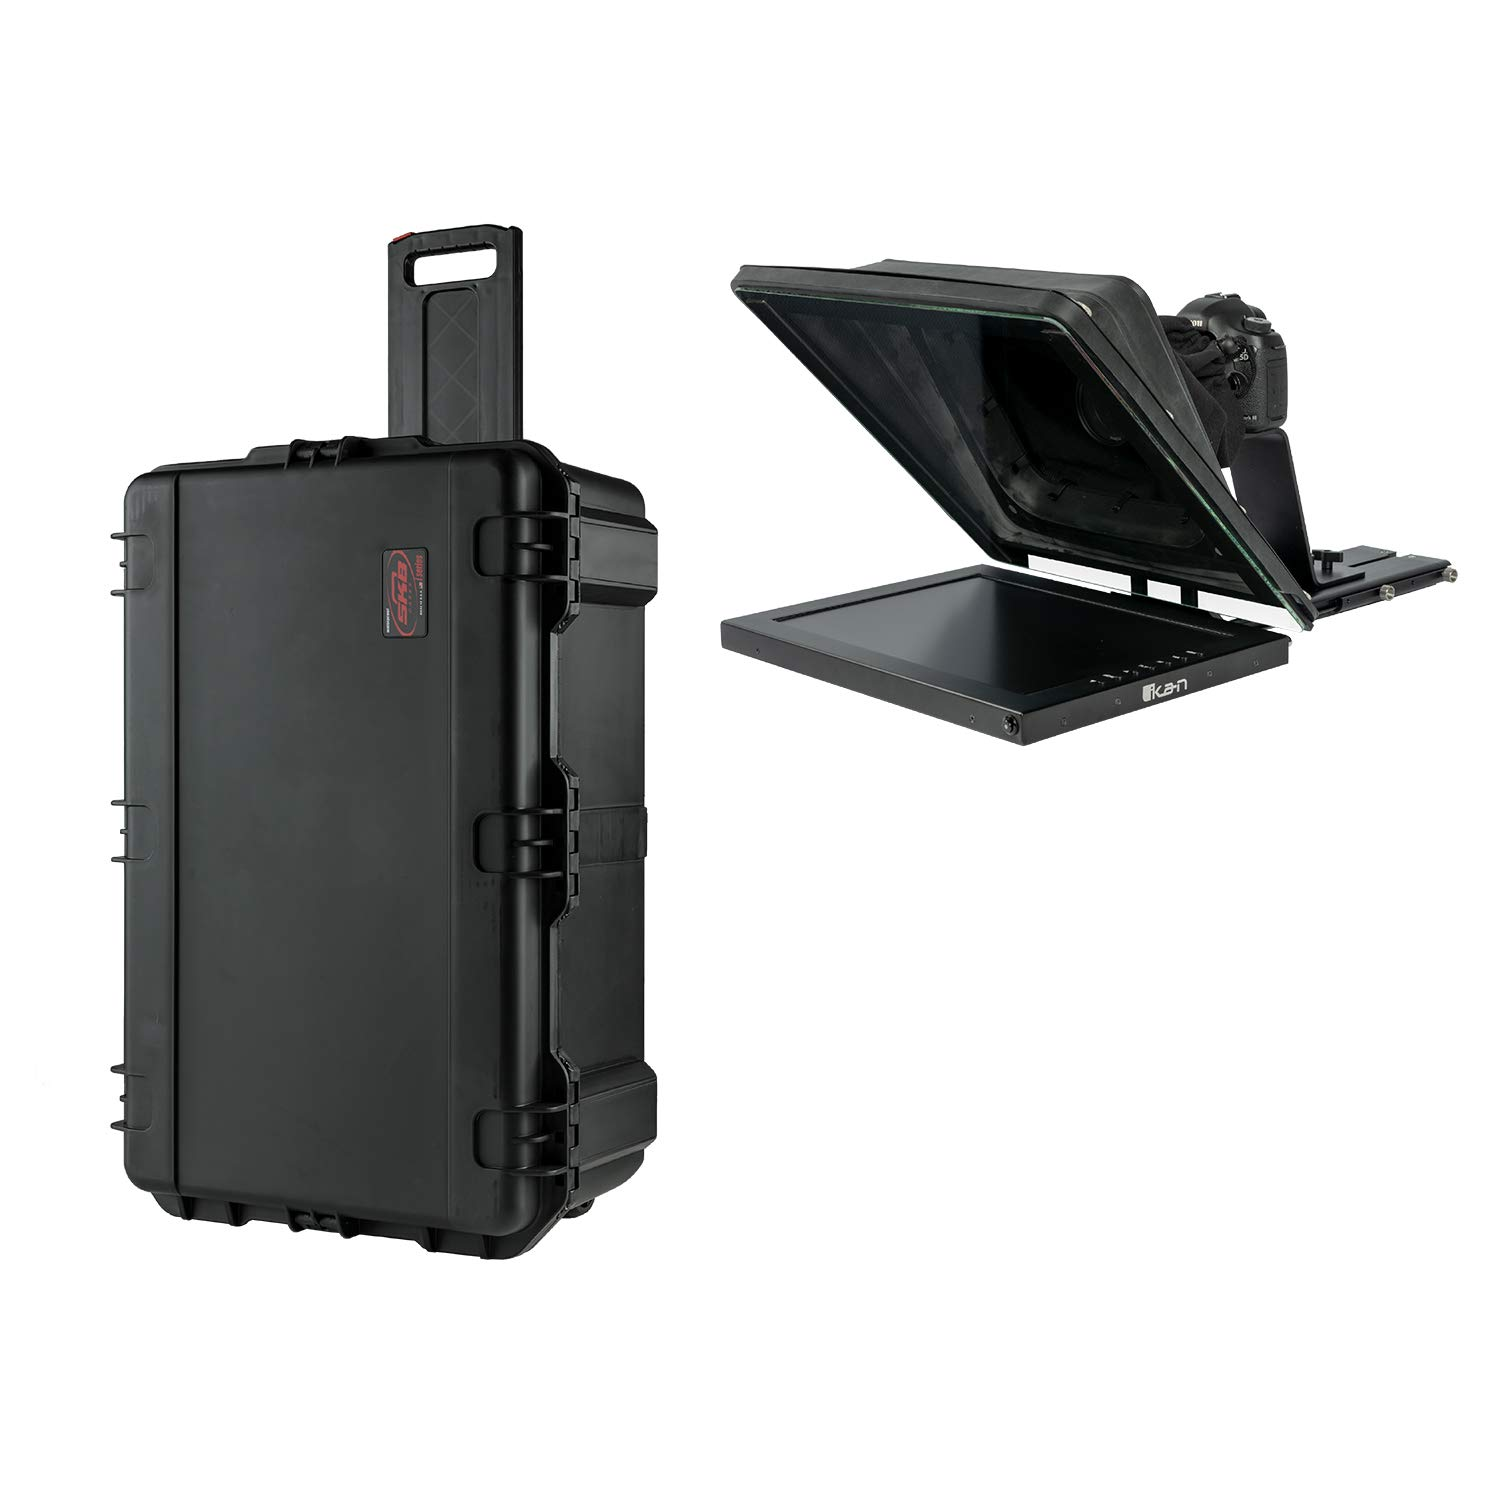 Ikan Professional 17'' High Bright Beam Splitter 70/30 Glass Teleprompter Kit with Travel Case (PT4700-TK) by Ikan